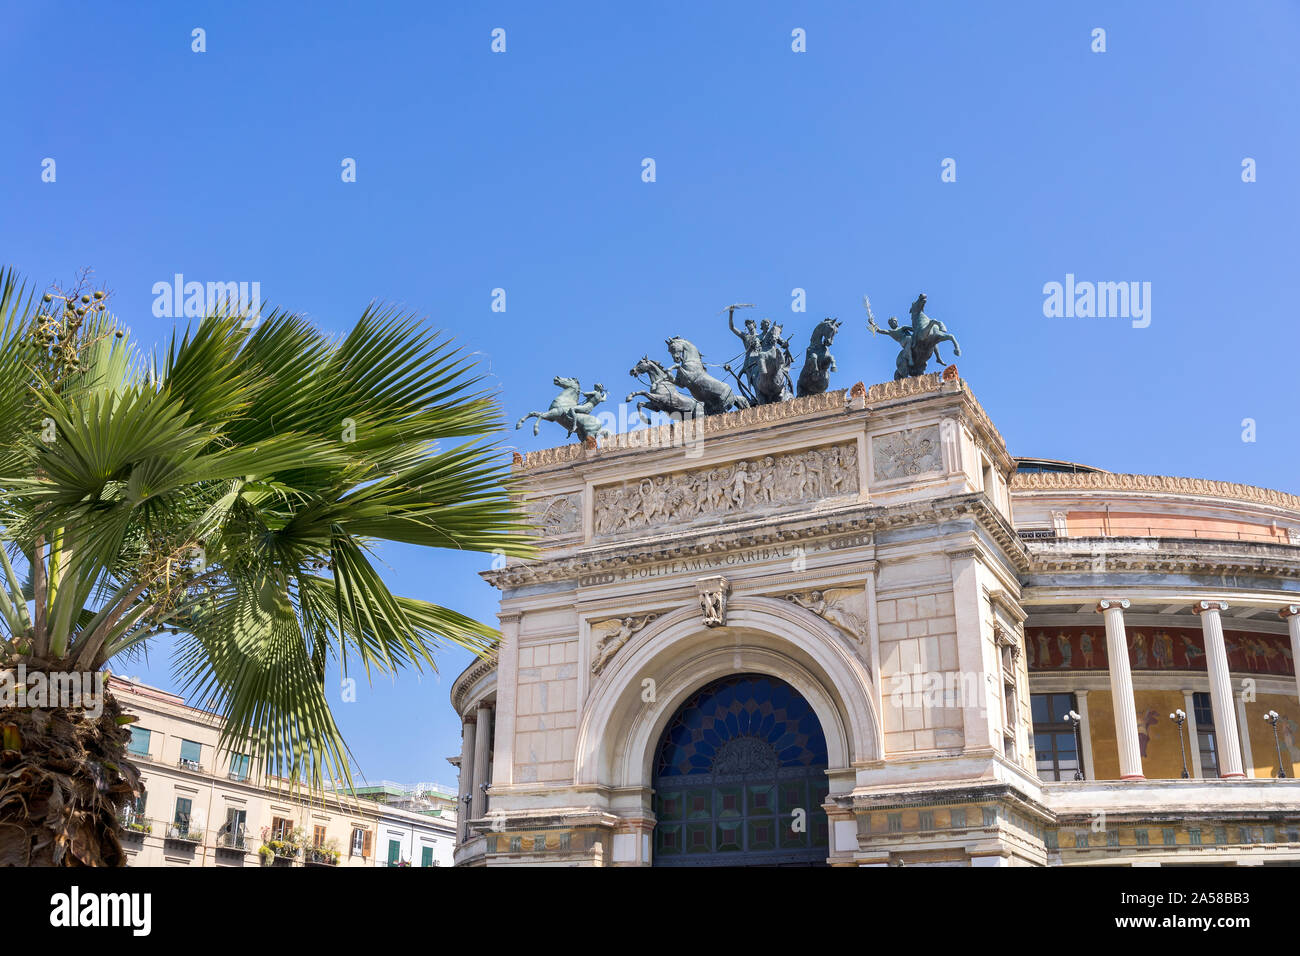 Palermo, Sicily - March 23, 2019: Teatro Politeama Palermo, Politeama Theatre front view in daylight with copy space. Stock Photo